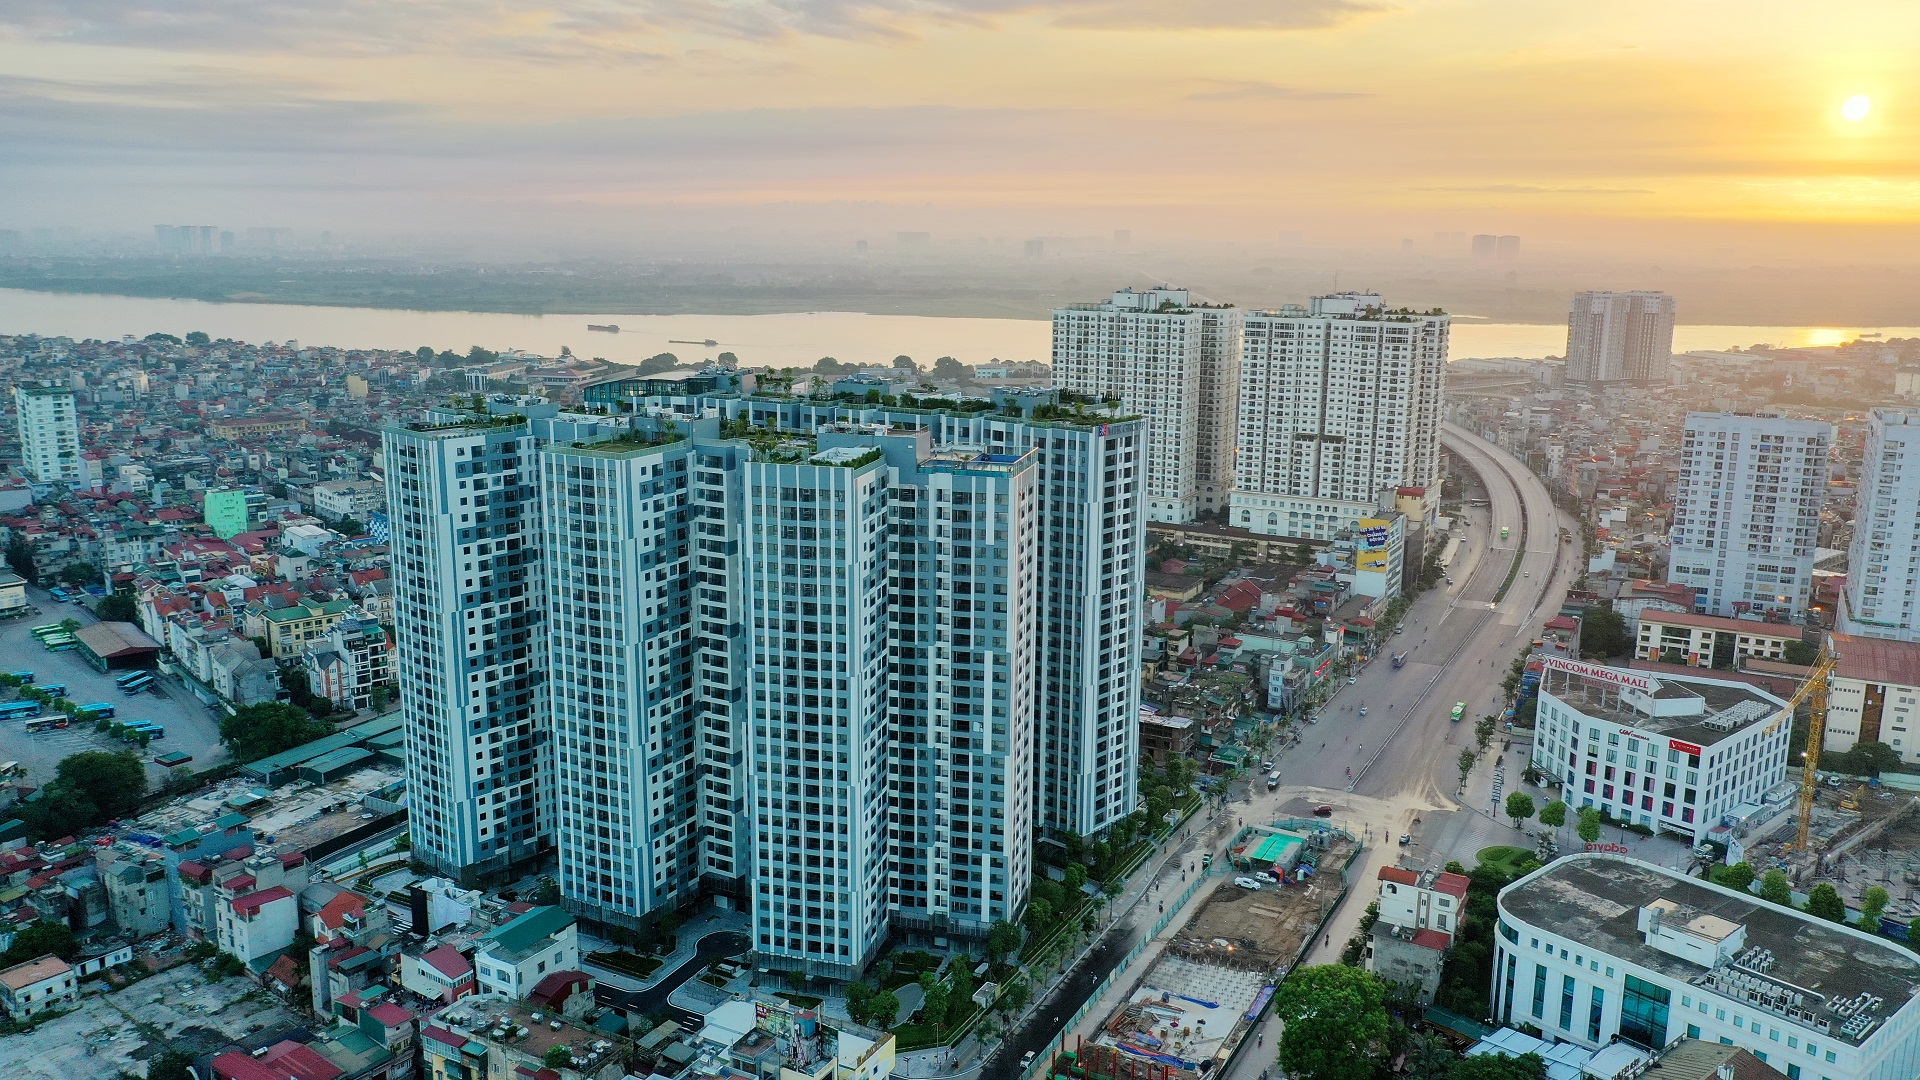 MIKGROUP: CORE VALUES IN DEVELOPING HIGH-END APARTMENTS